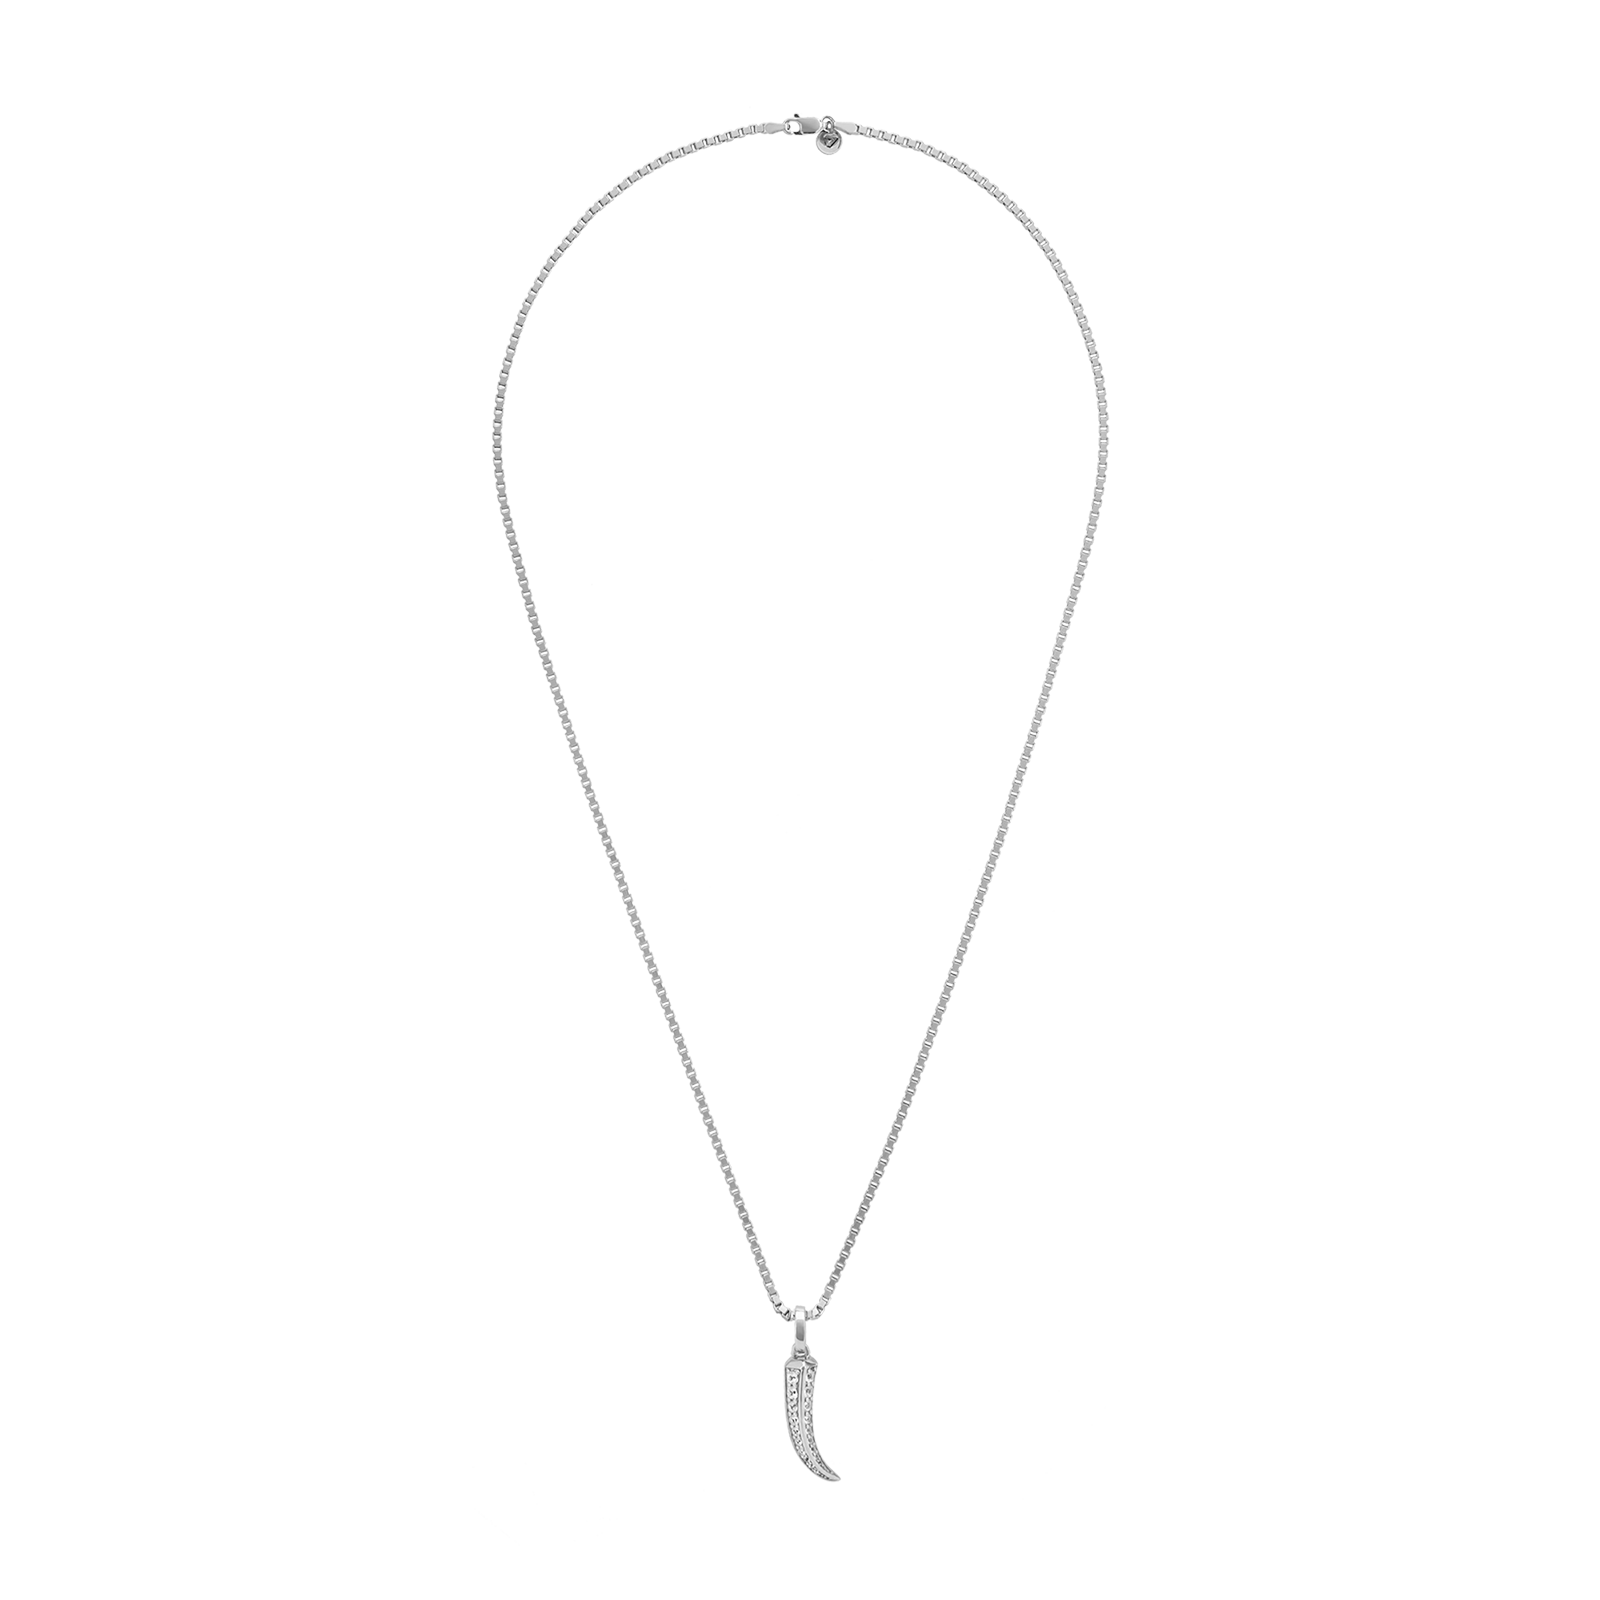 Necklace product image